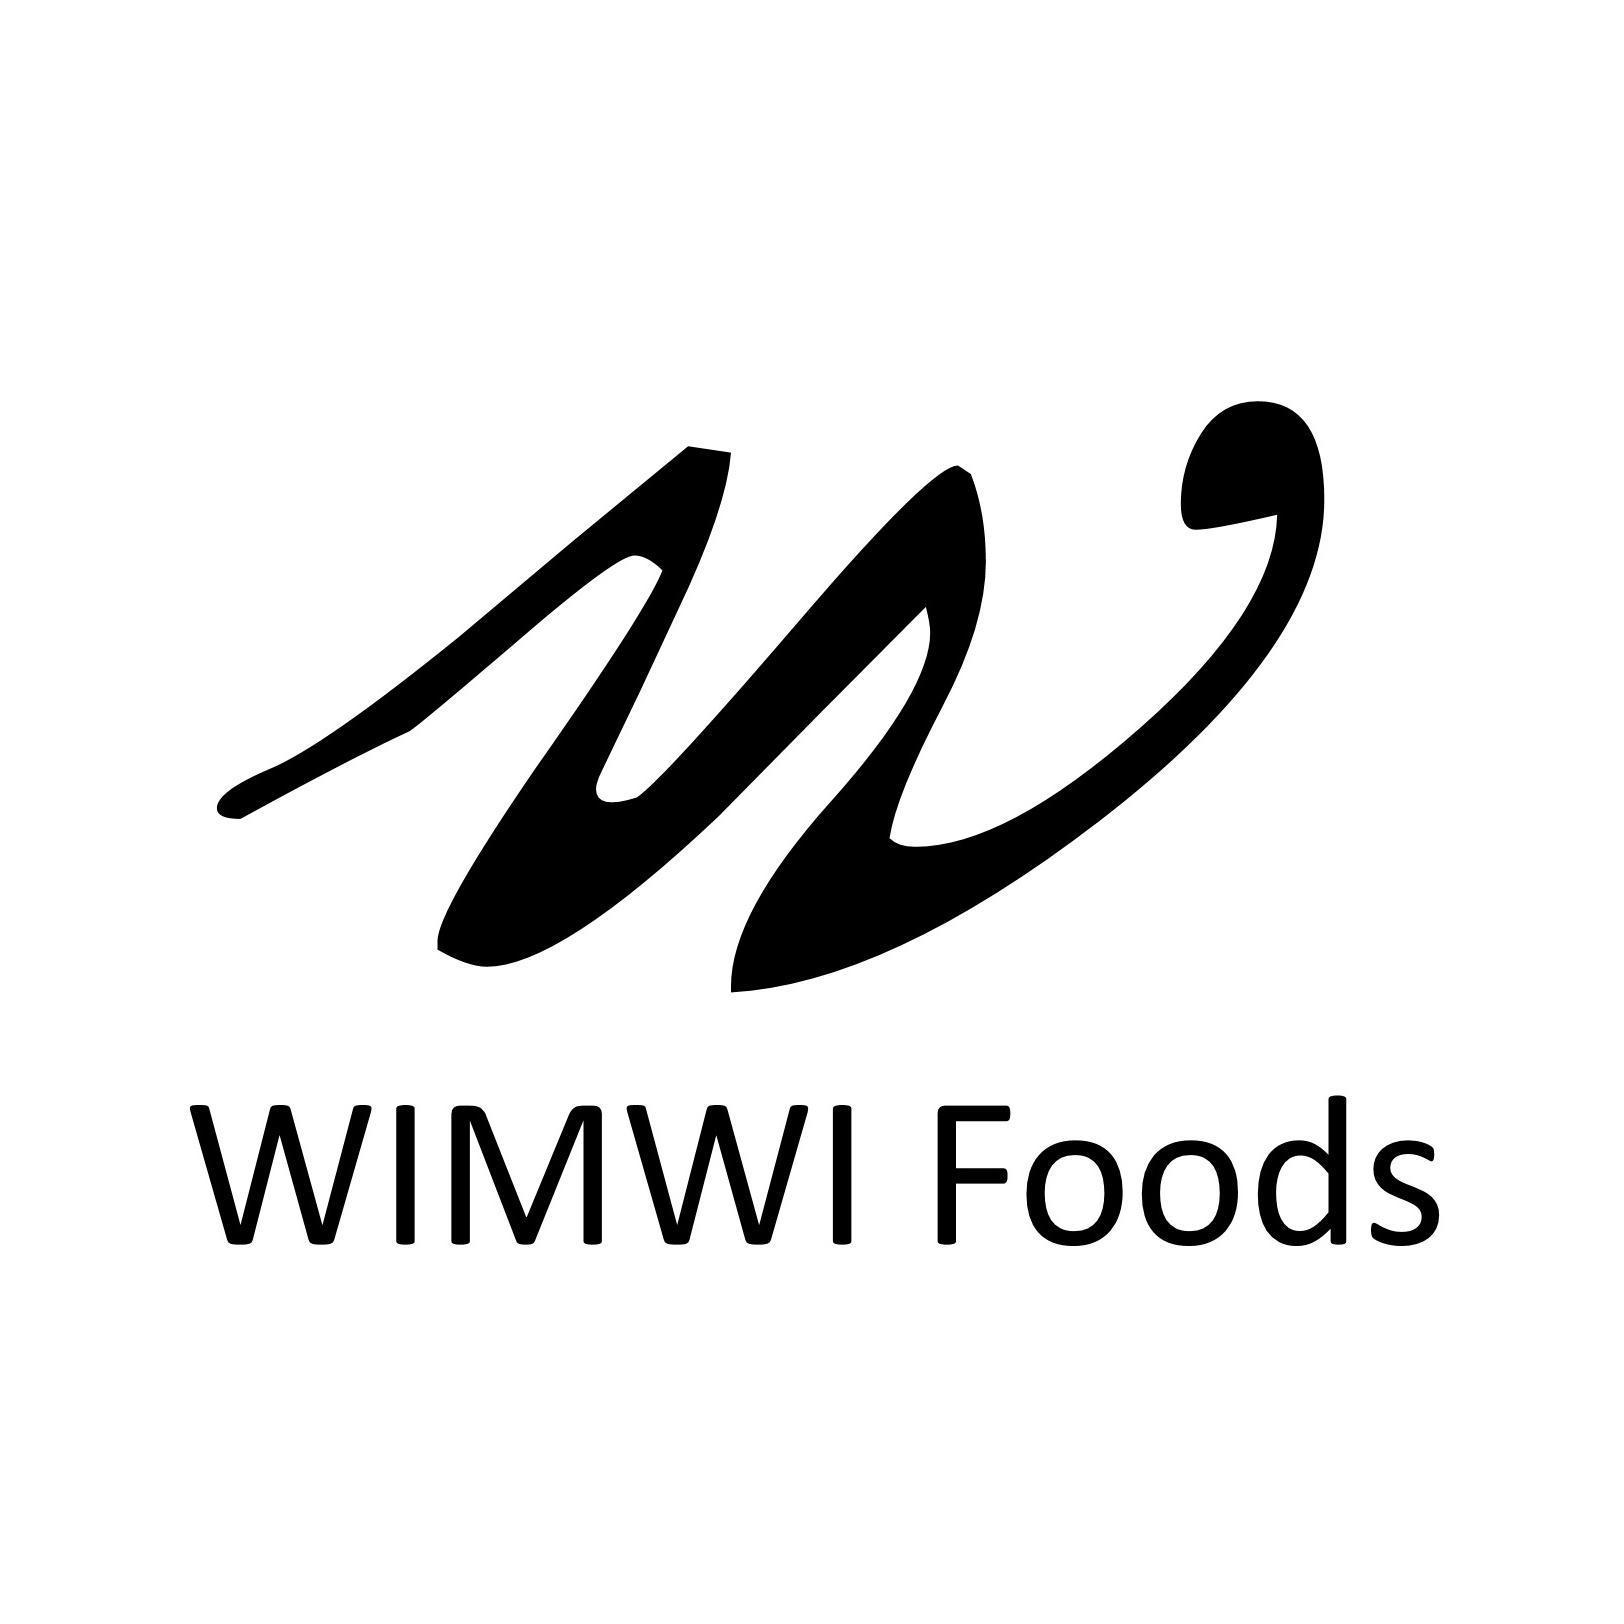 WIMWI Foods